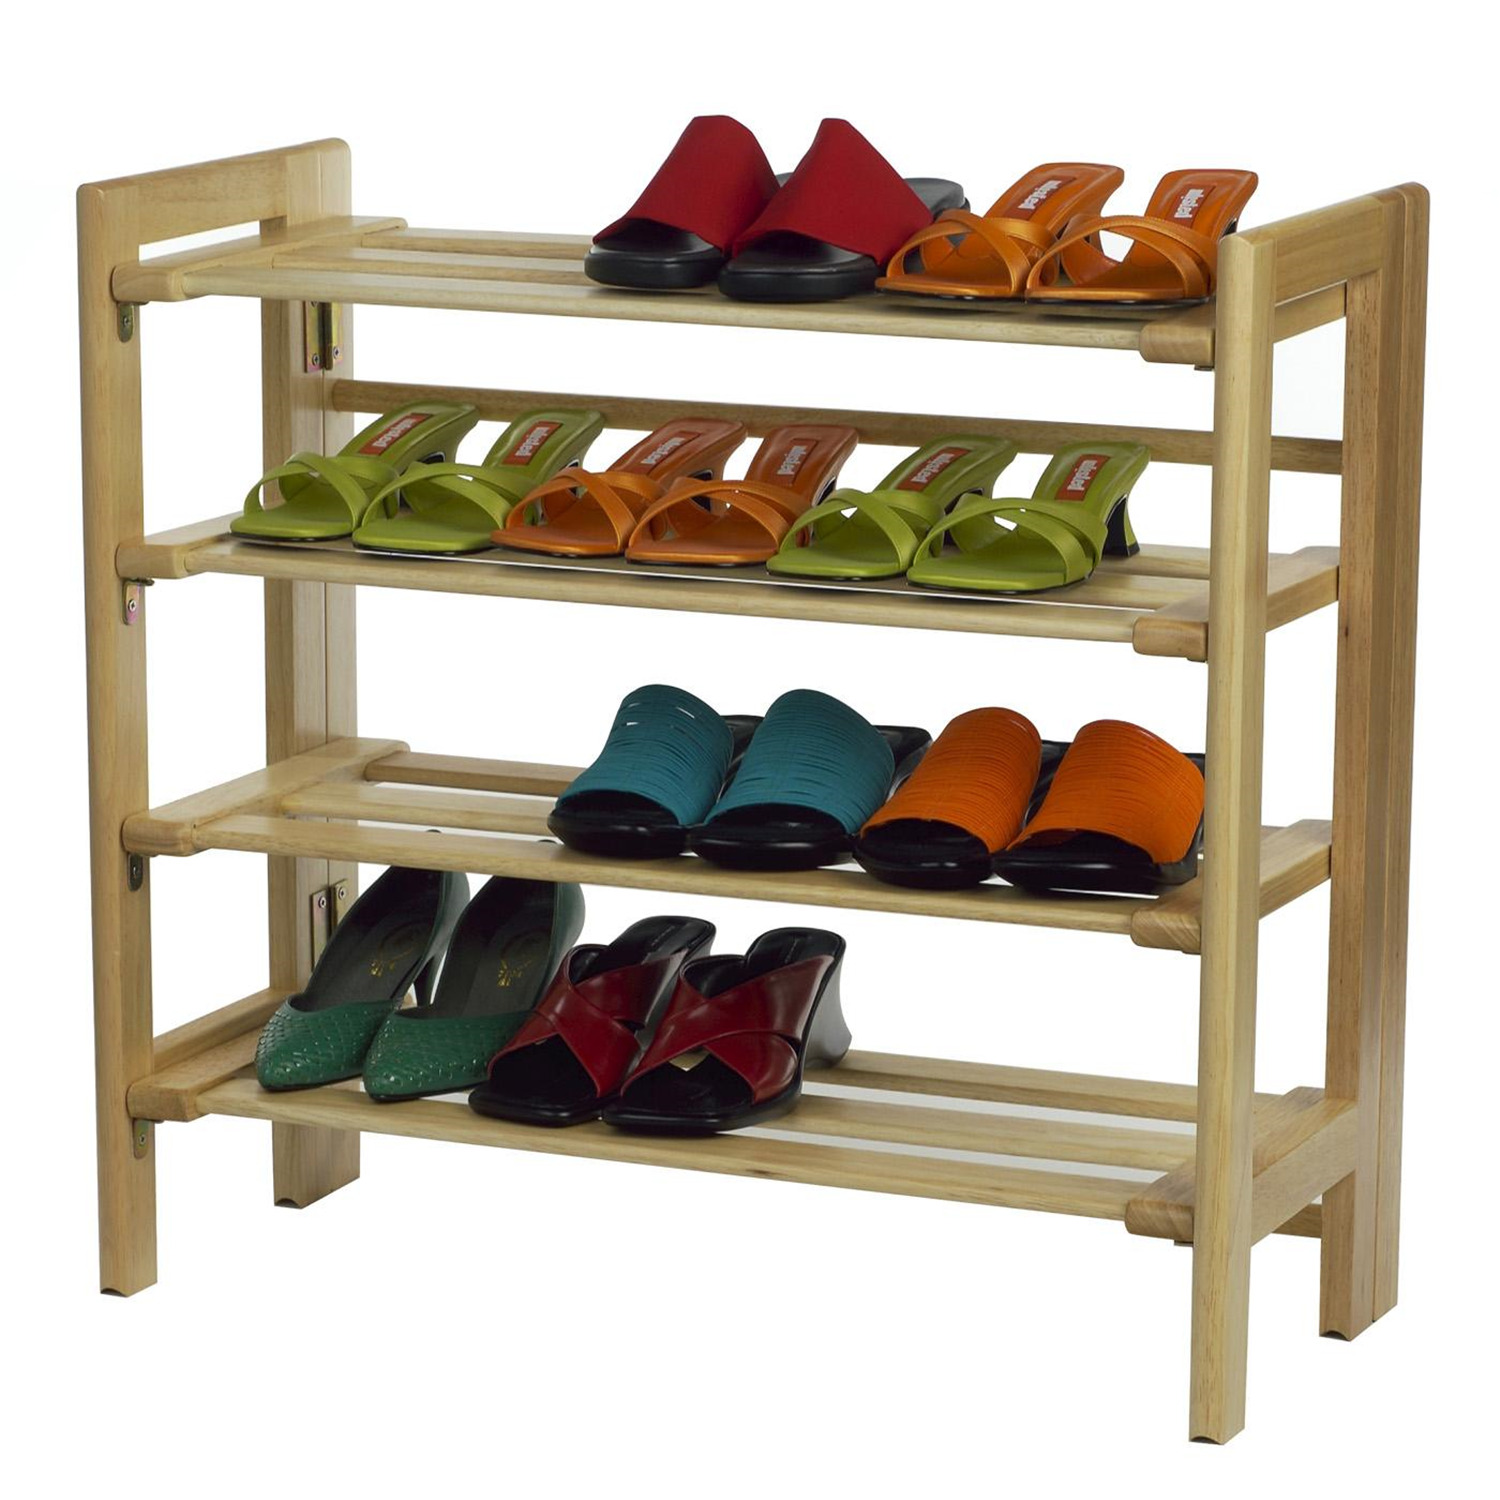 Shoe Rack, 4tier  Ojcommerce. Modern Prefab Garage Kits. Garage Door Hinges. Garage Doors Tempe Az. Blue Garage Cabinets. Home Depot Garage Lights. Side Garage Door Exterior. Halloween Garage Decorations. Sears Garage Door Parts